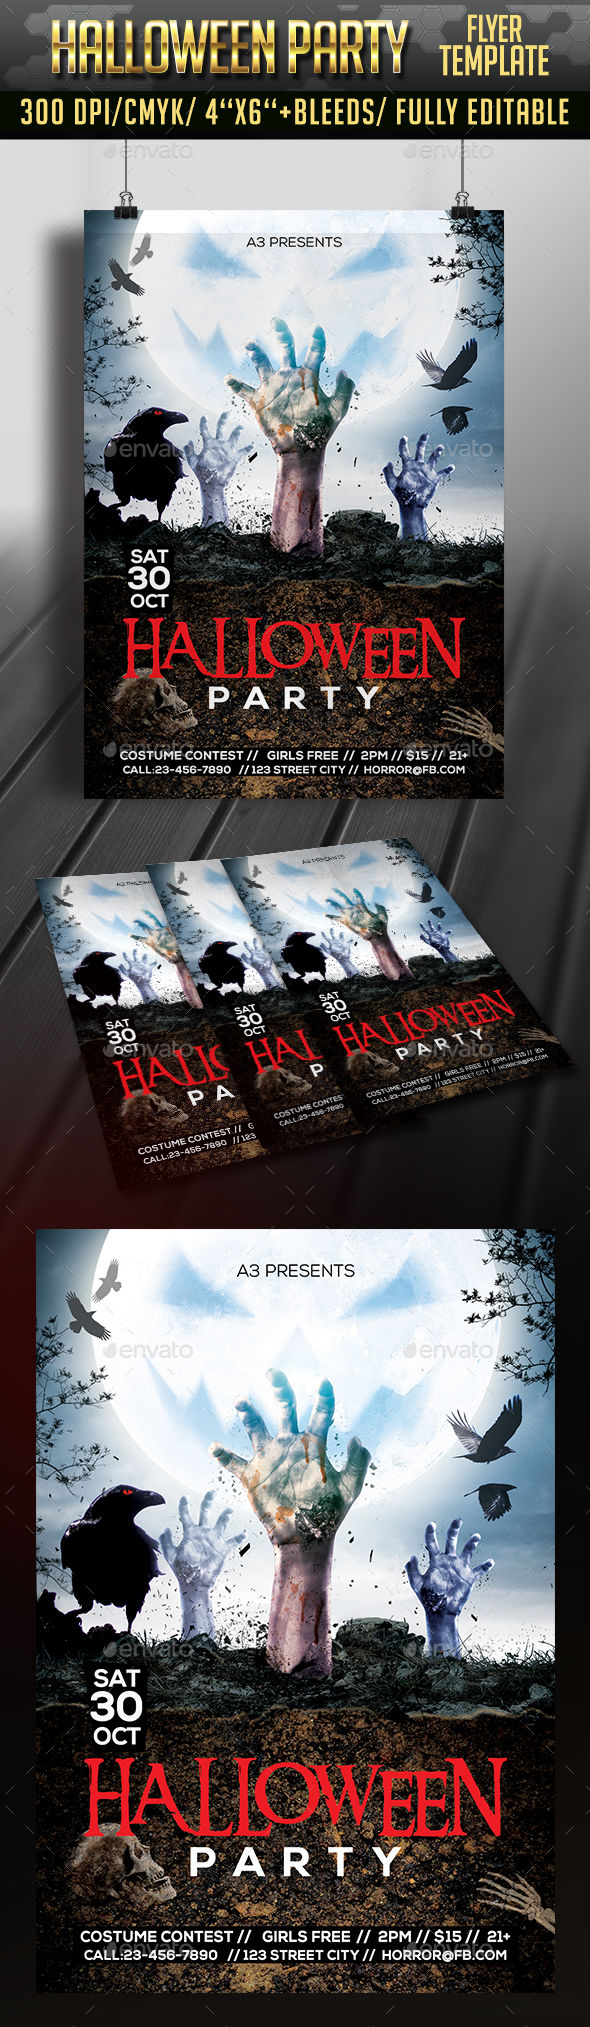 Halloween Flyer Template by Arrow3000 (Halloween party flyer)